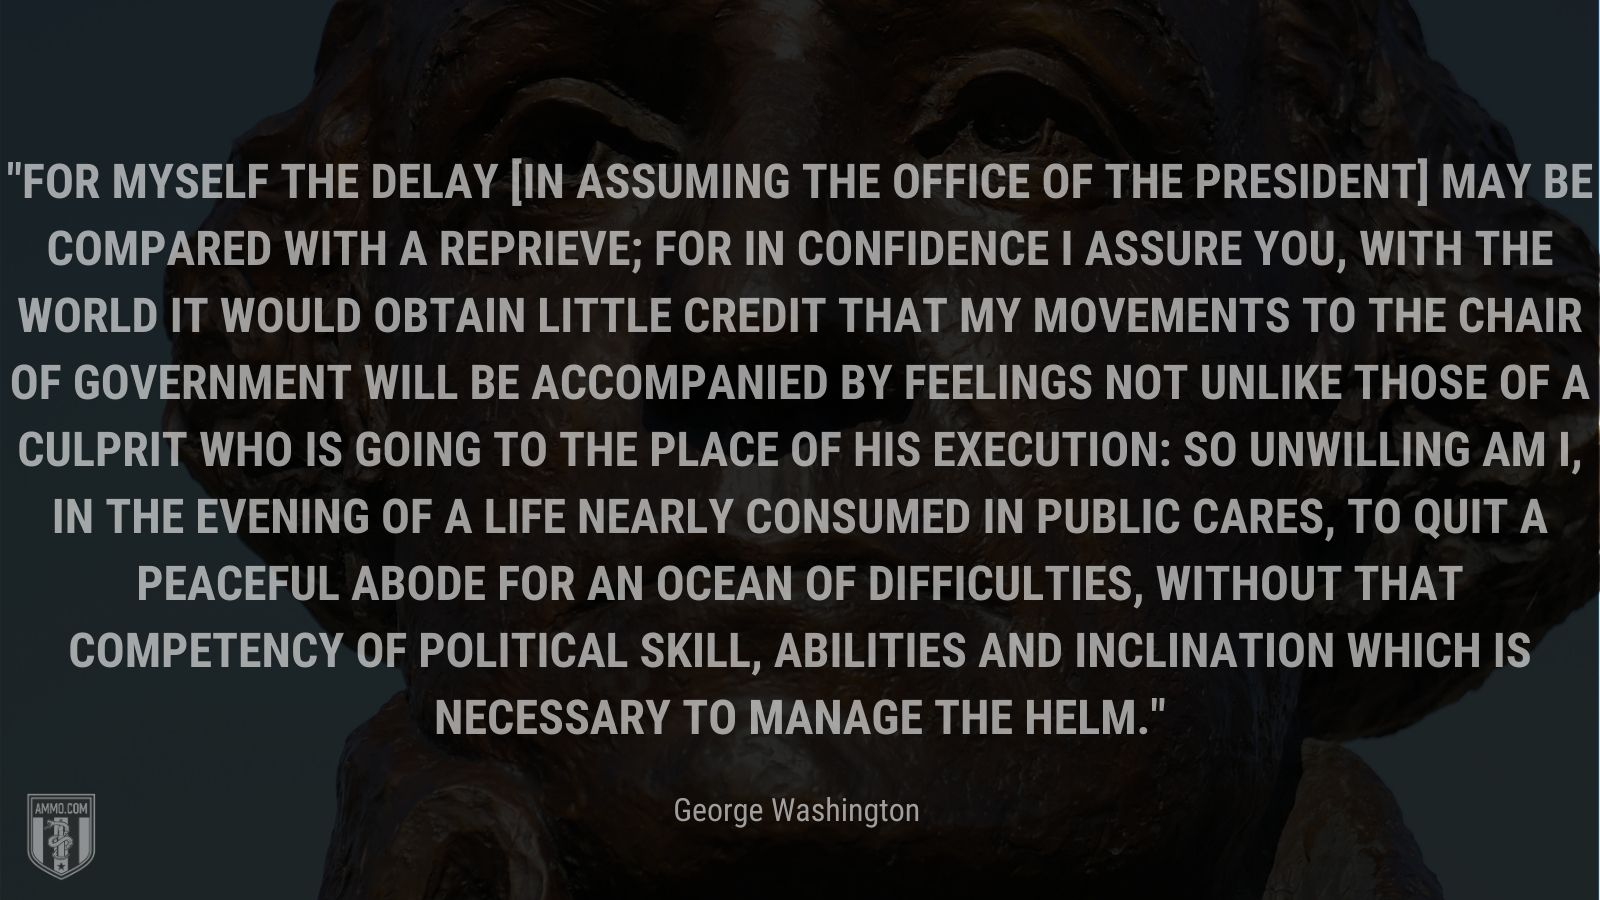 """""""For myself the delay [in assuming the office of the President] may be compared with a reprieve; for in confidence I assure you, with the world it would obtain little credit that my movements to the chair of Government will be accompanied by feelings not unlike those of a culprit who is going to the place of his execution: so unwilling am I, in the evening of a life nearly consumed in public cares, to quit a peaceful abode for an Ocean of difficulties, without that competency of political skill, abilities and inclination which is necessary to manage the helm."""" - George Washington"""